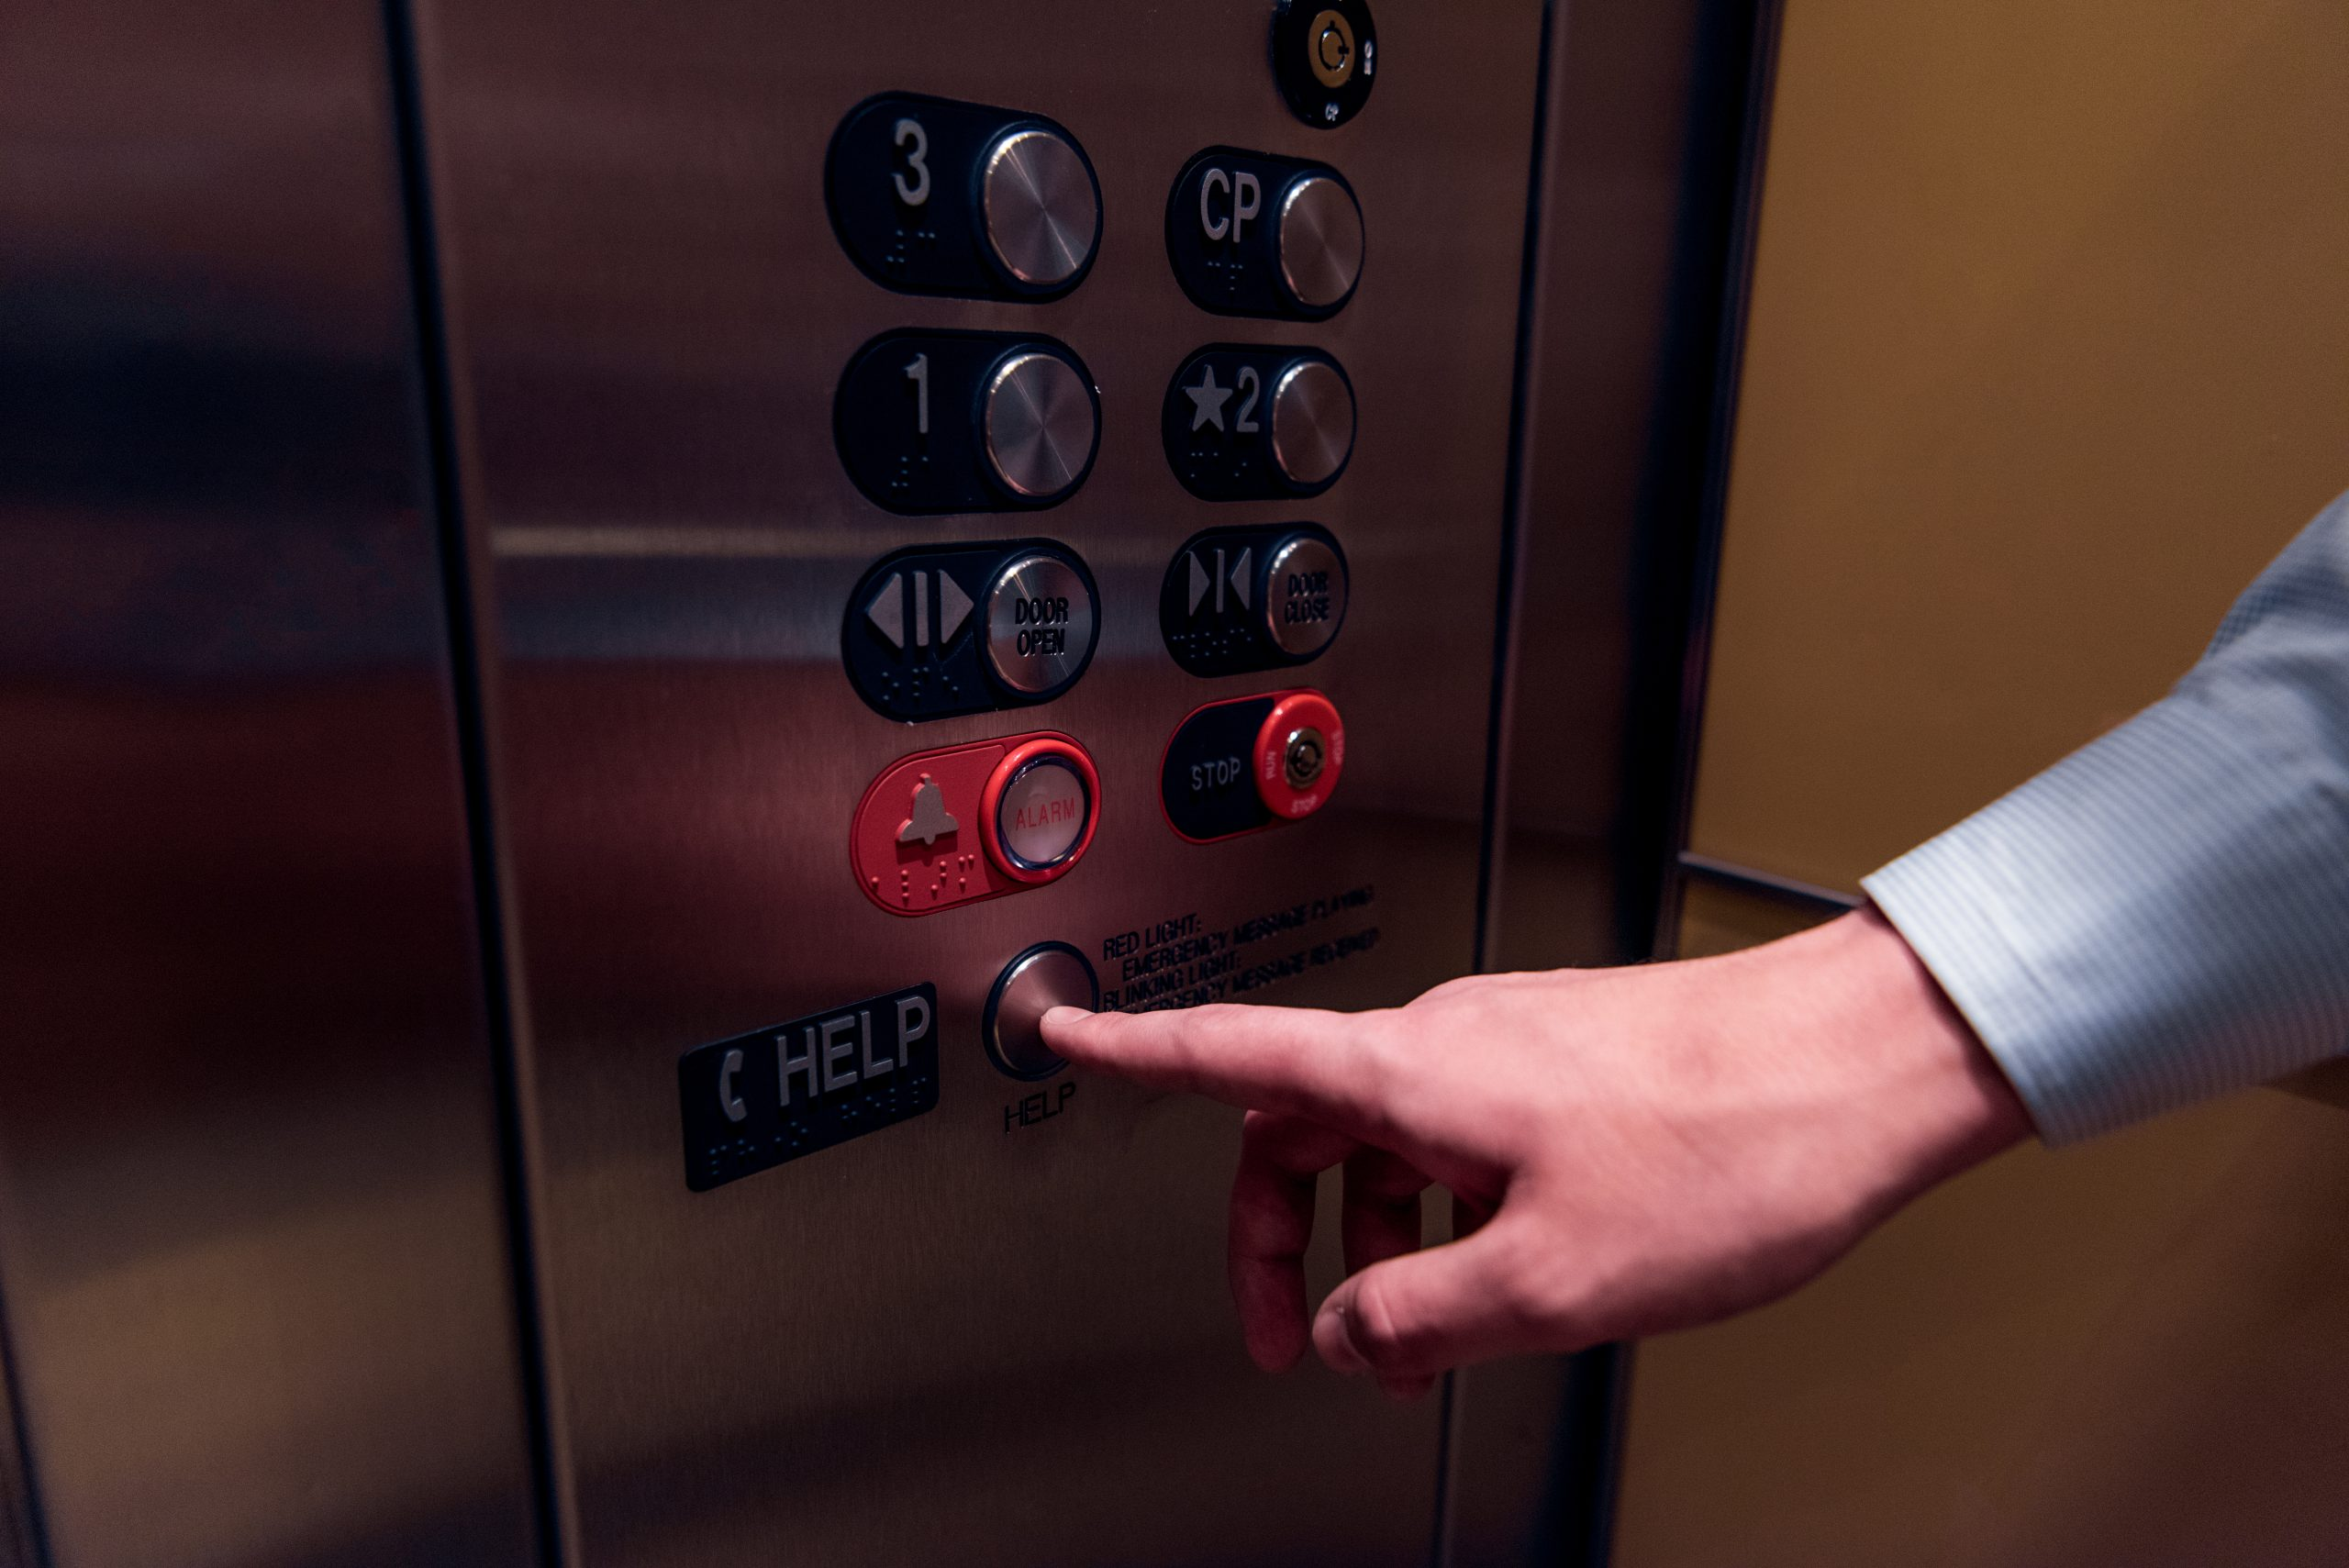 Recent News Reveals Elevator Rides Turned Tragic. What Can We Do?